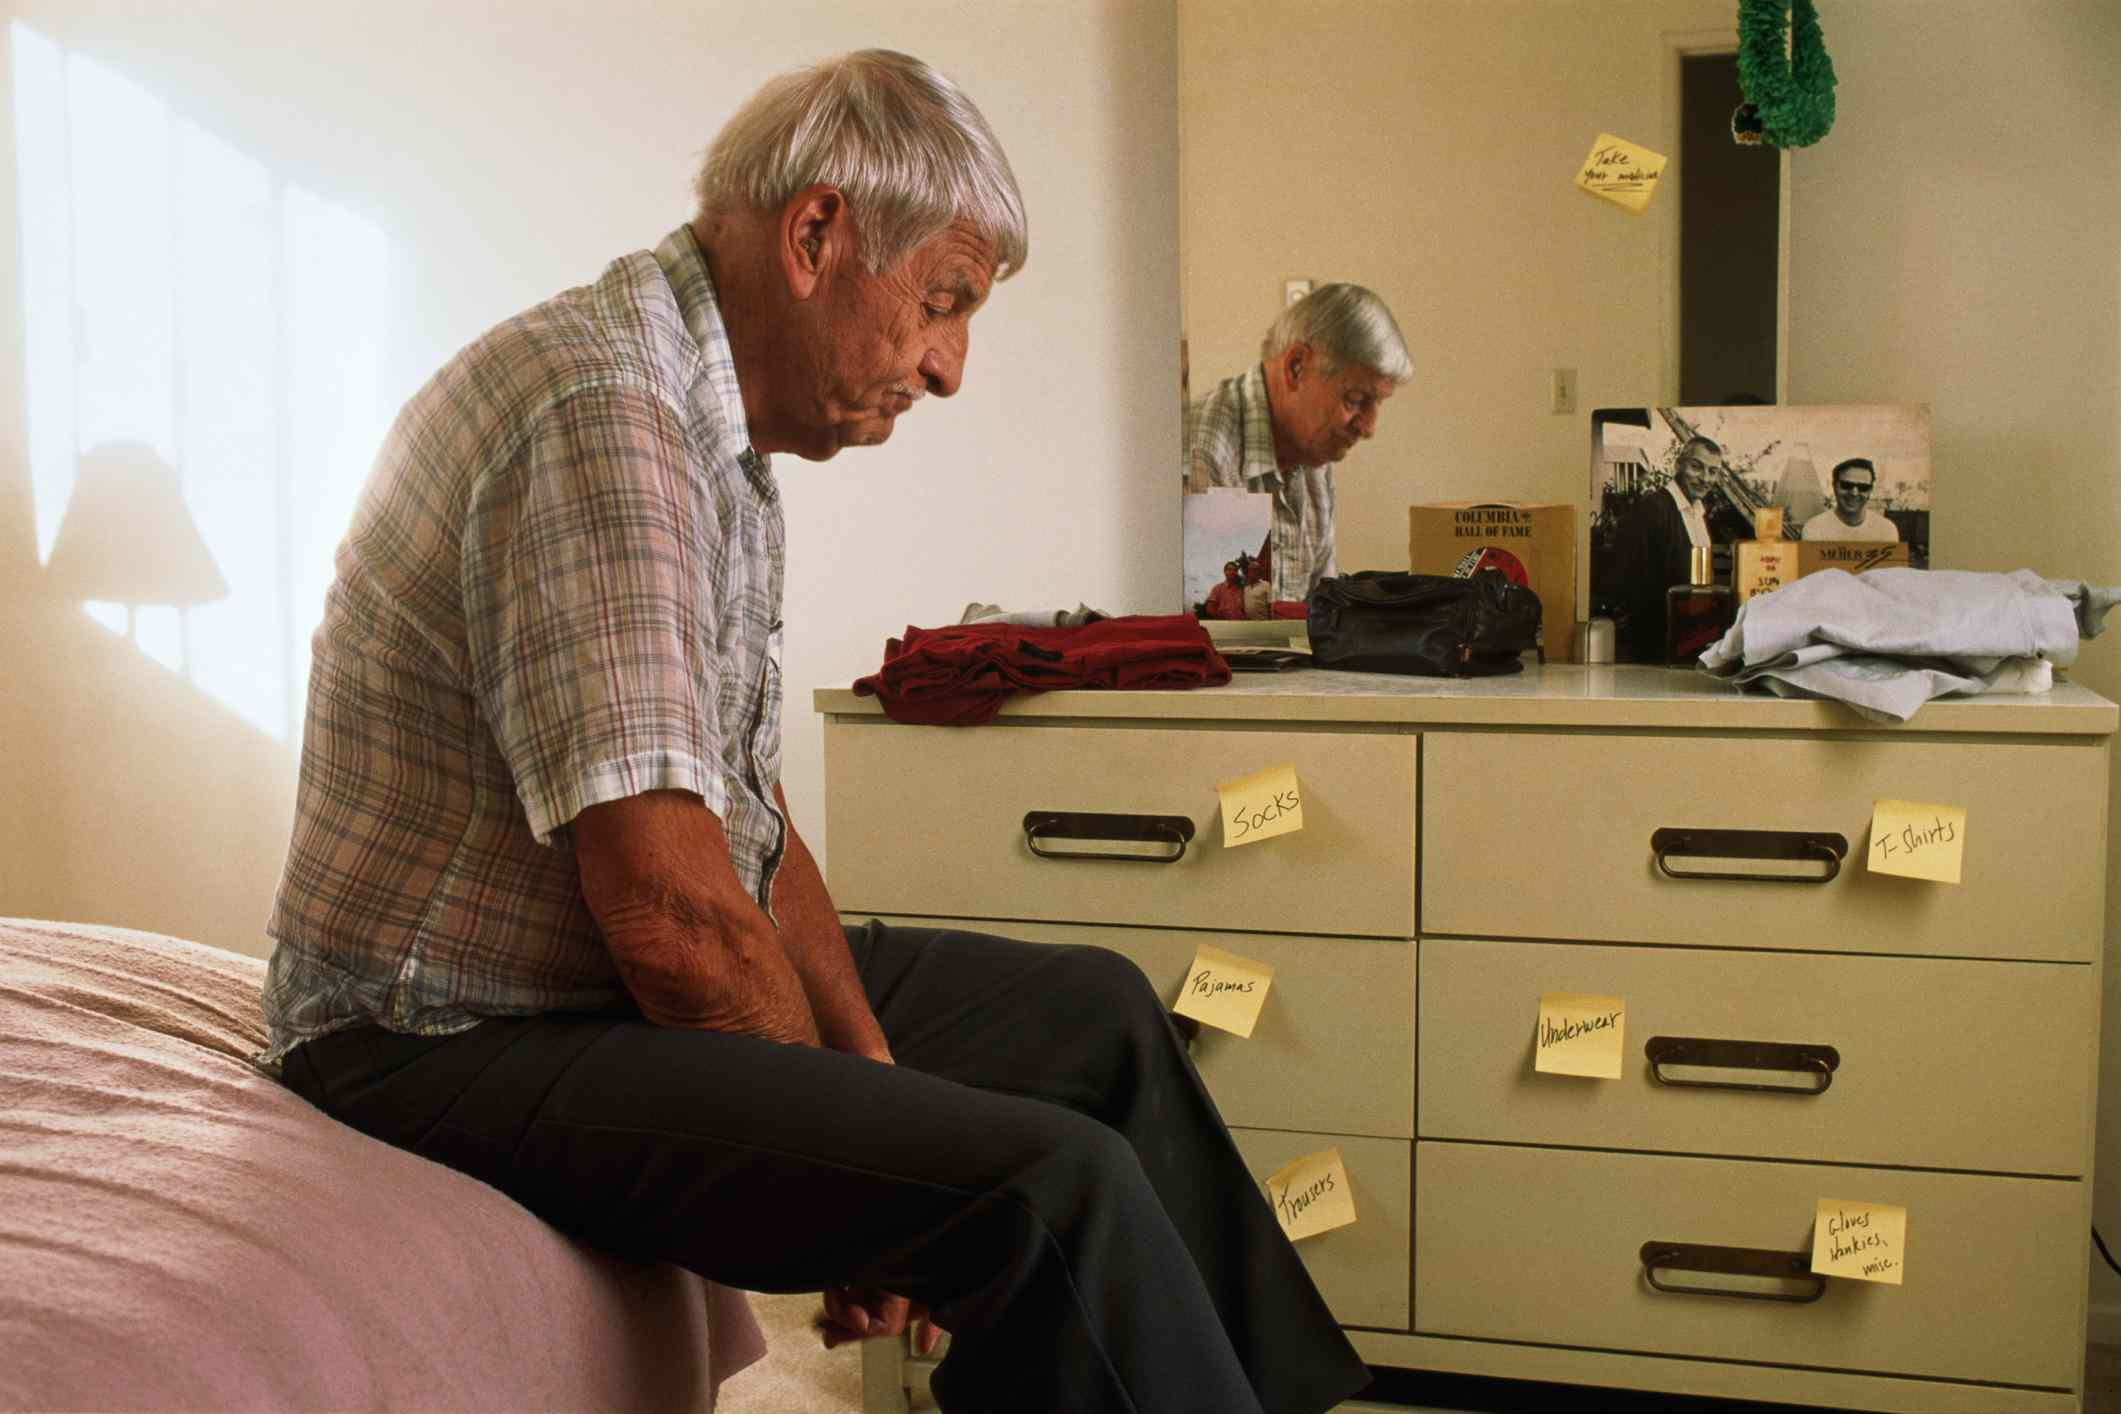 Male Alzheimer's patient sitting on bed, reminders on dresser drawers